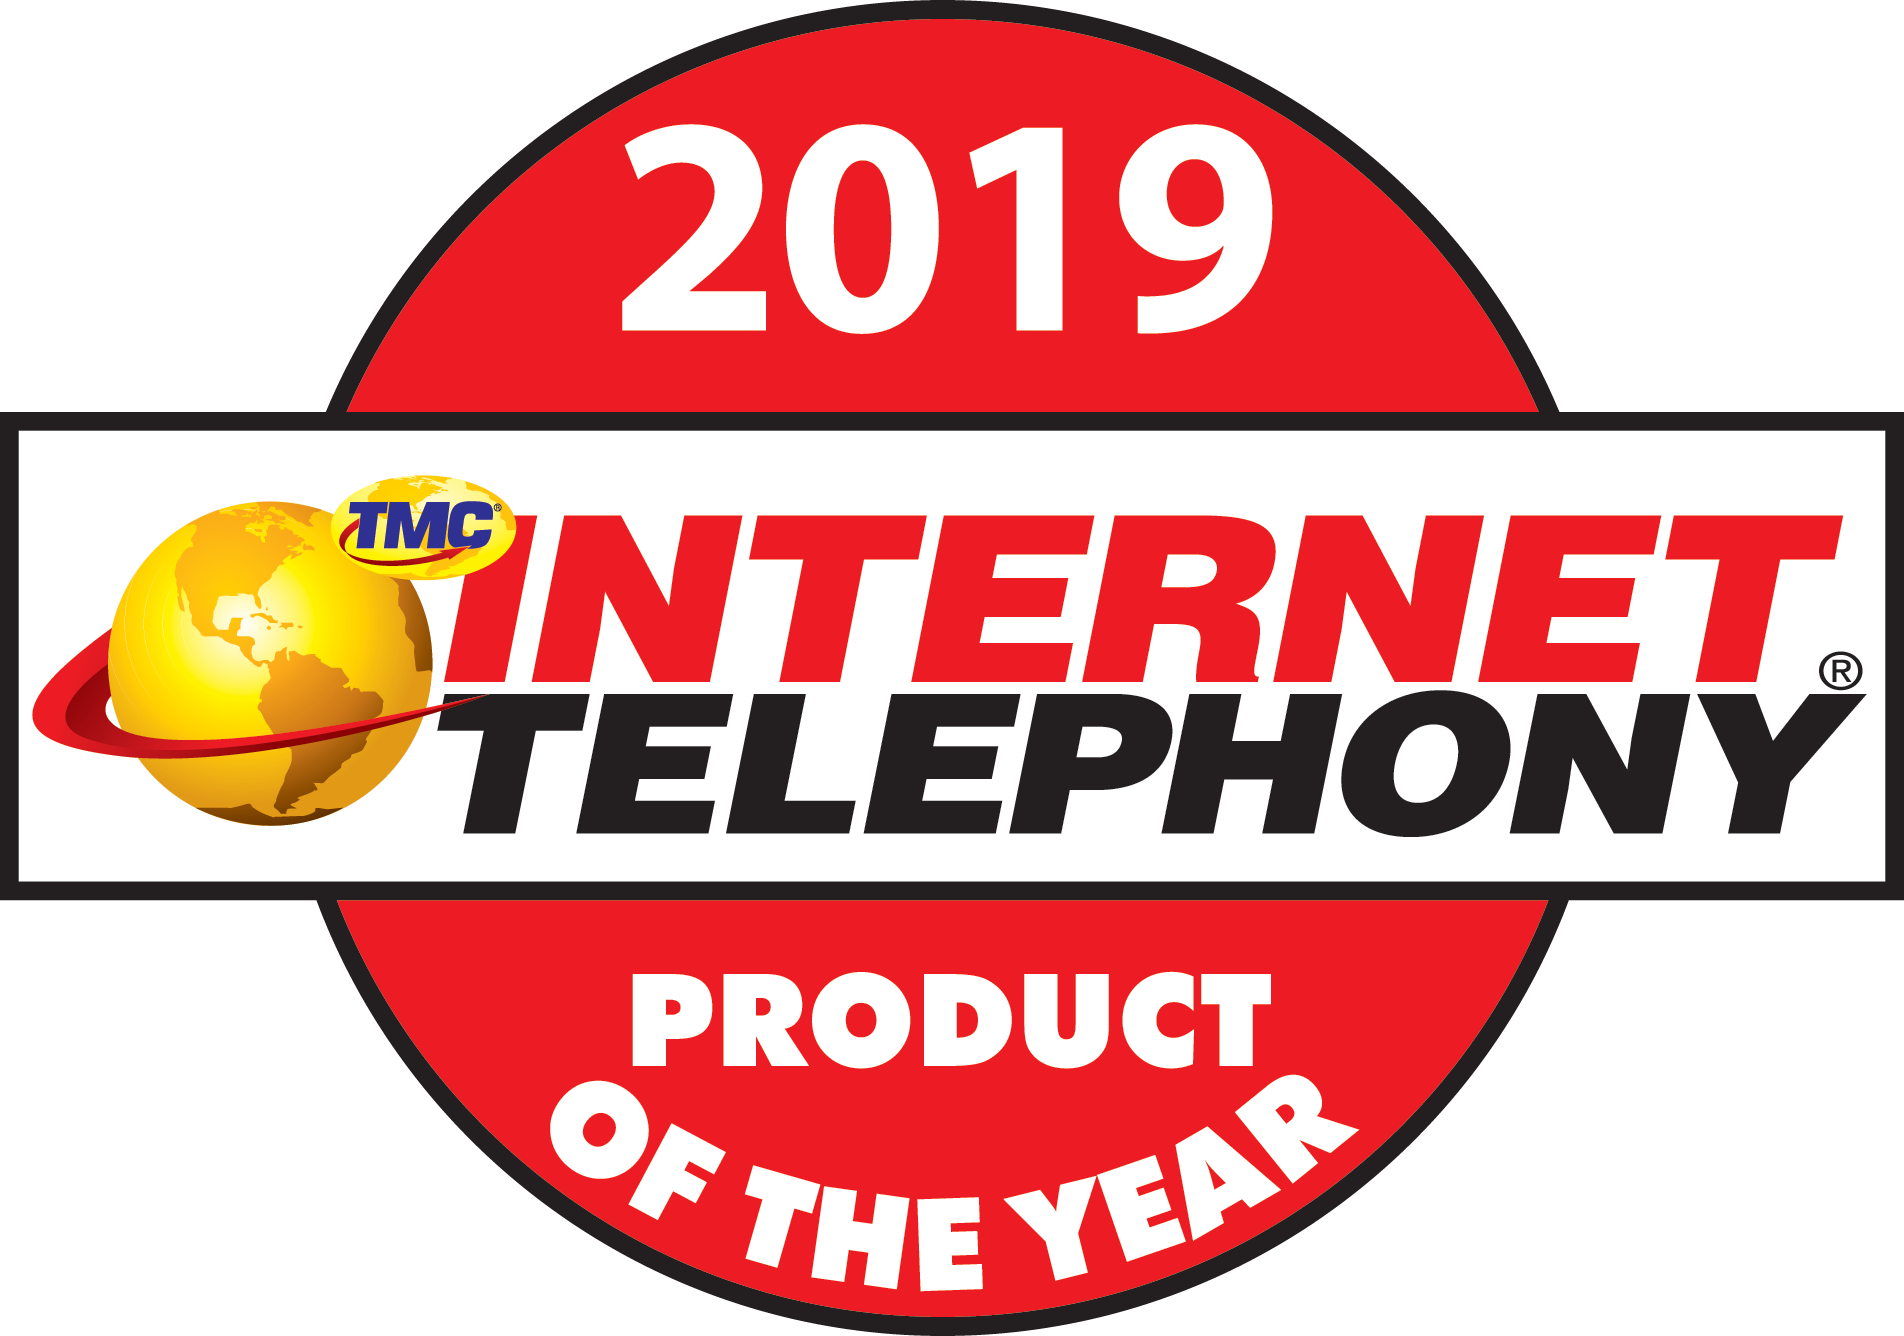 2019 Product of Year